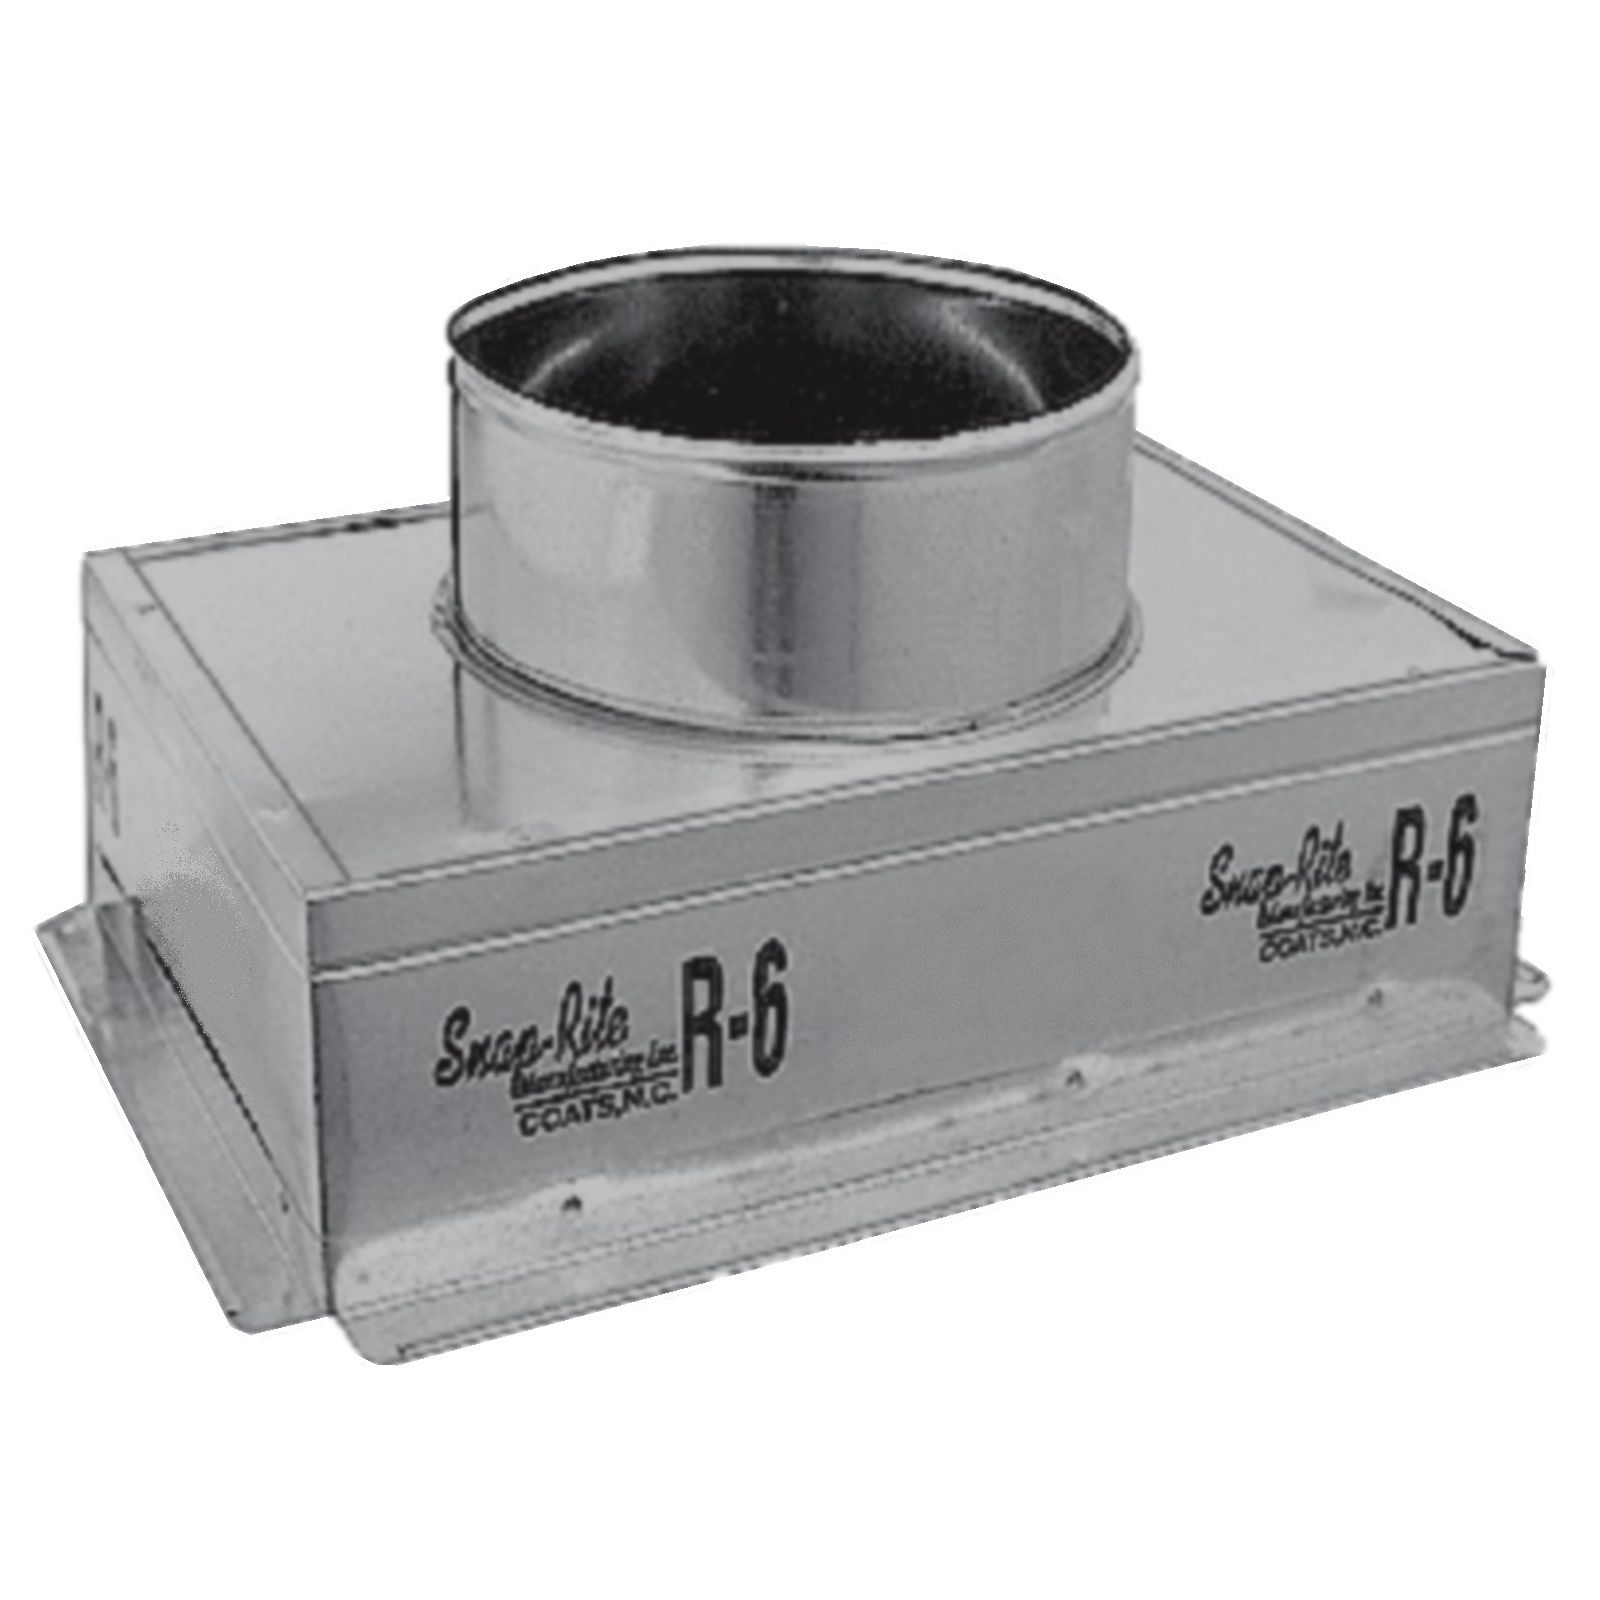 "Snap-Rite 12X08X083600FG - Metal Top Insulated Register Box With Flange & Gasket, 12"" x 08"" x 08"" - R6"